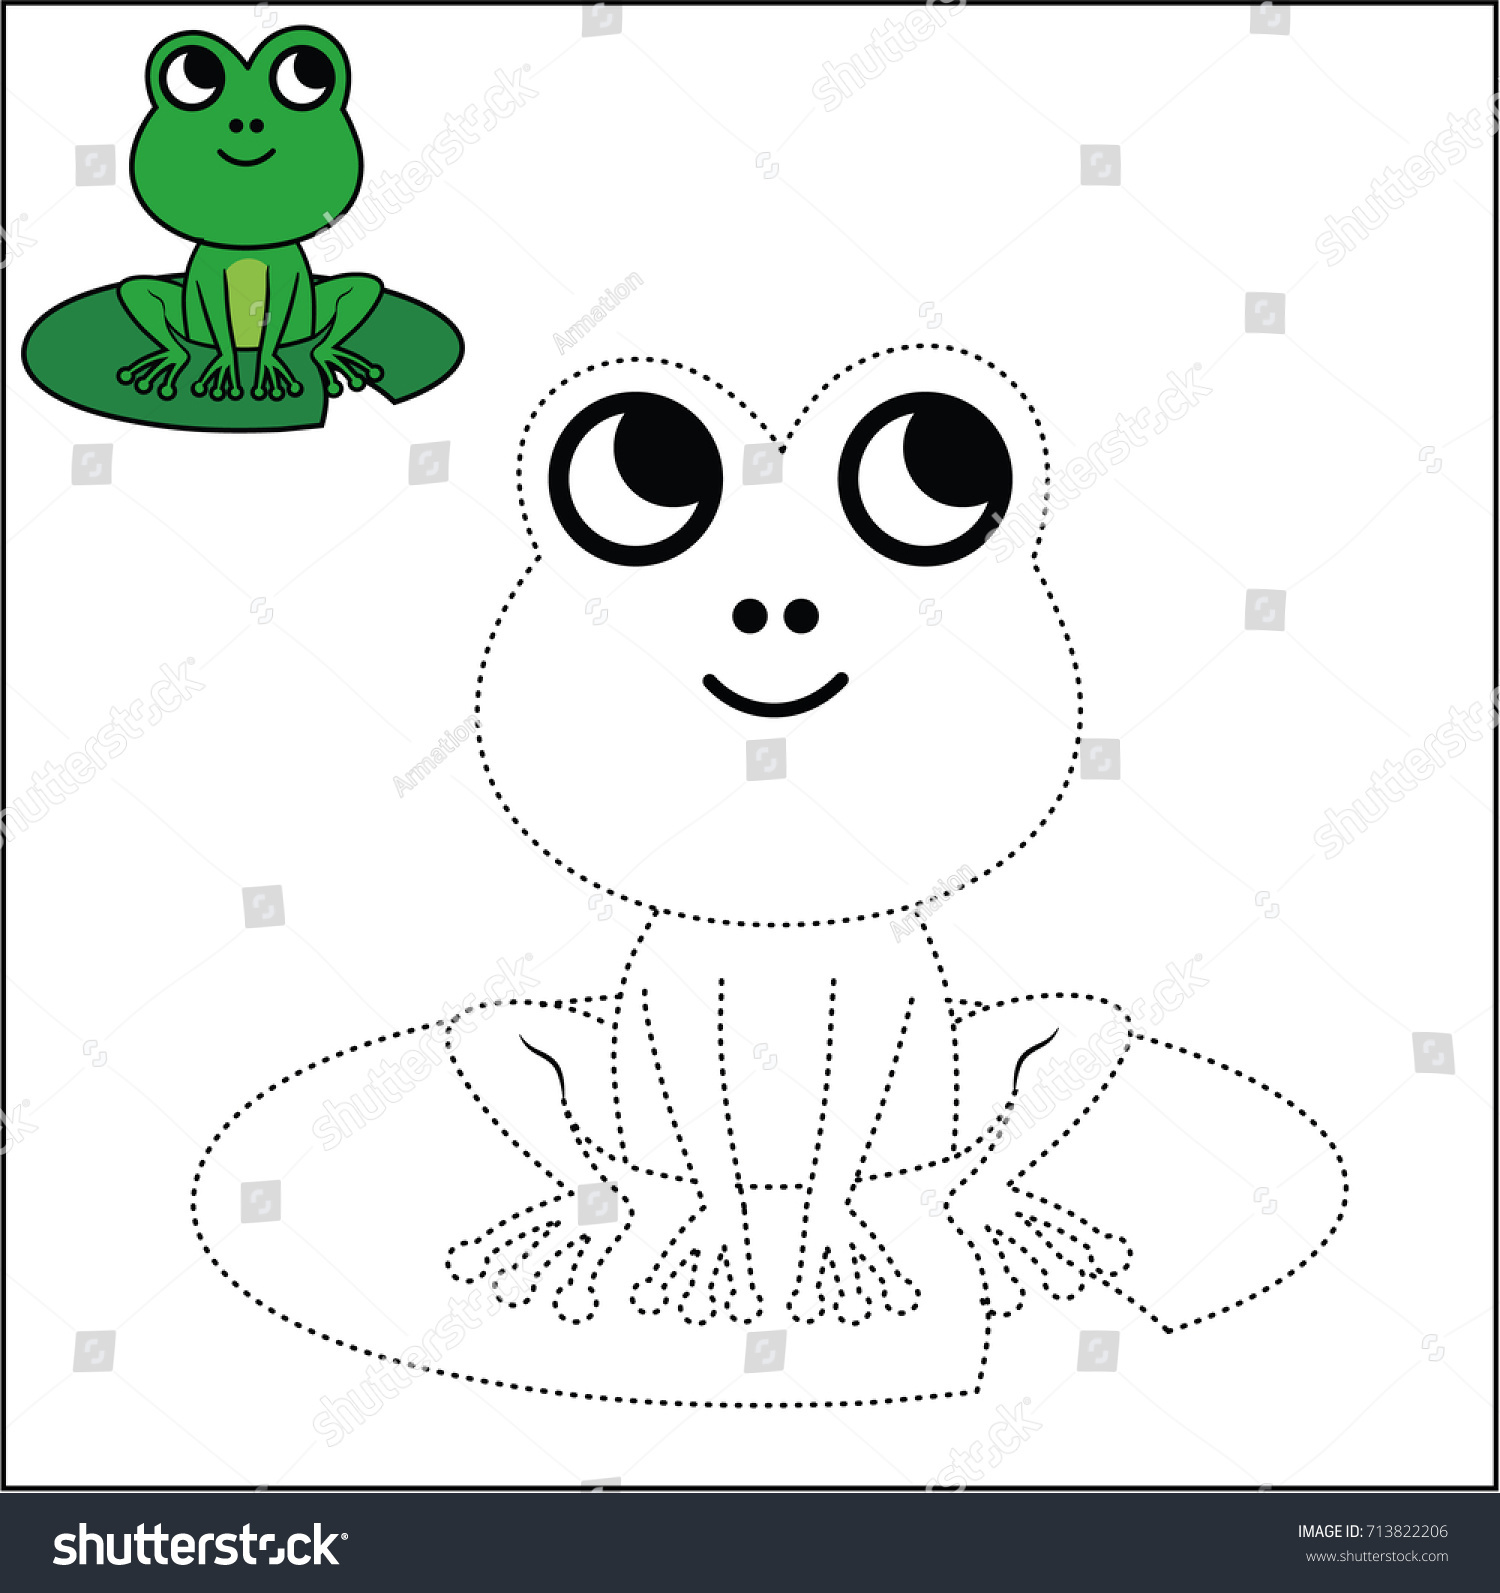 Connect Dots Coloring Page Frog Vector Stock Vector HD (Royalty Free ...